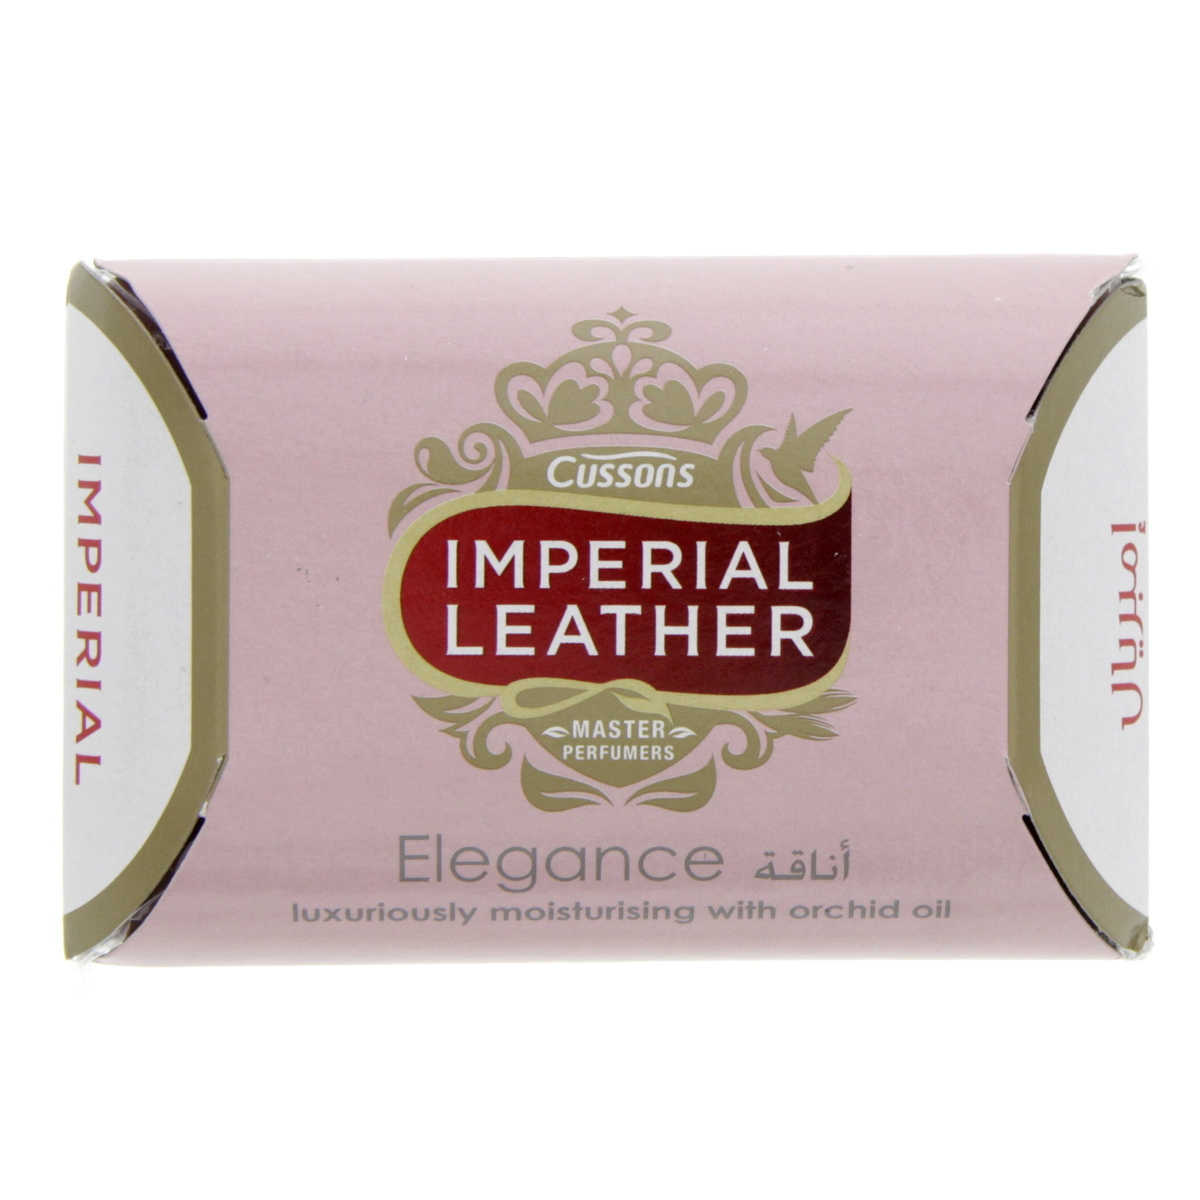 Buy Imperial Leather Elegance Soap 125g - Bath Soaps - Lulu